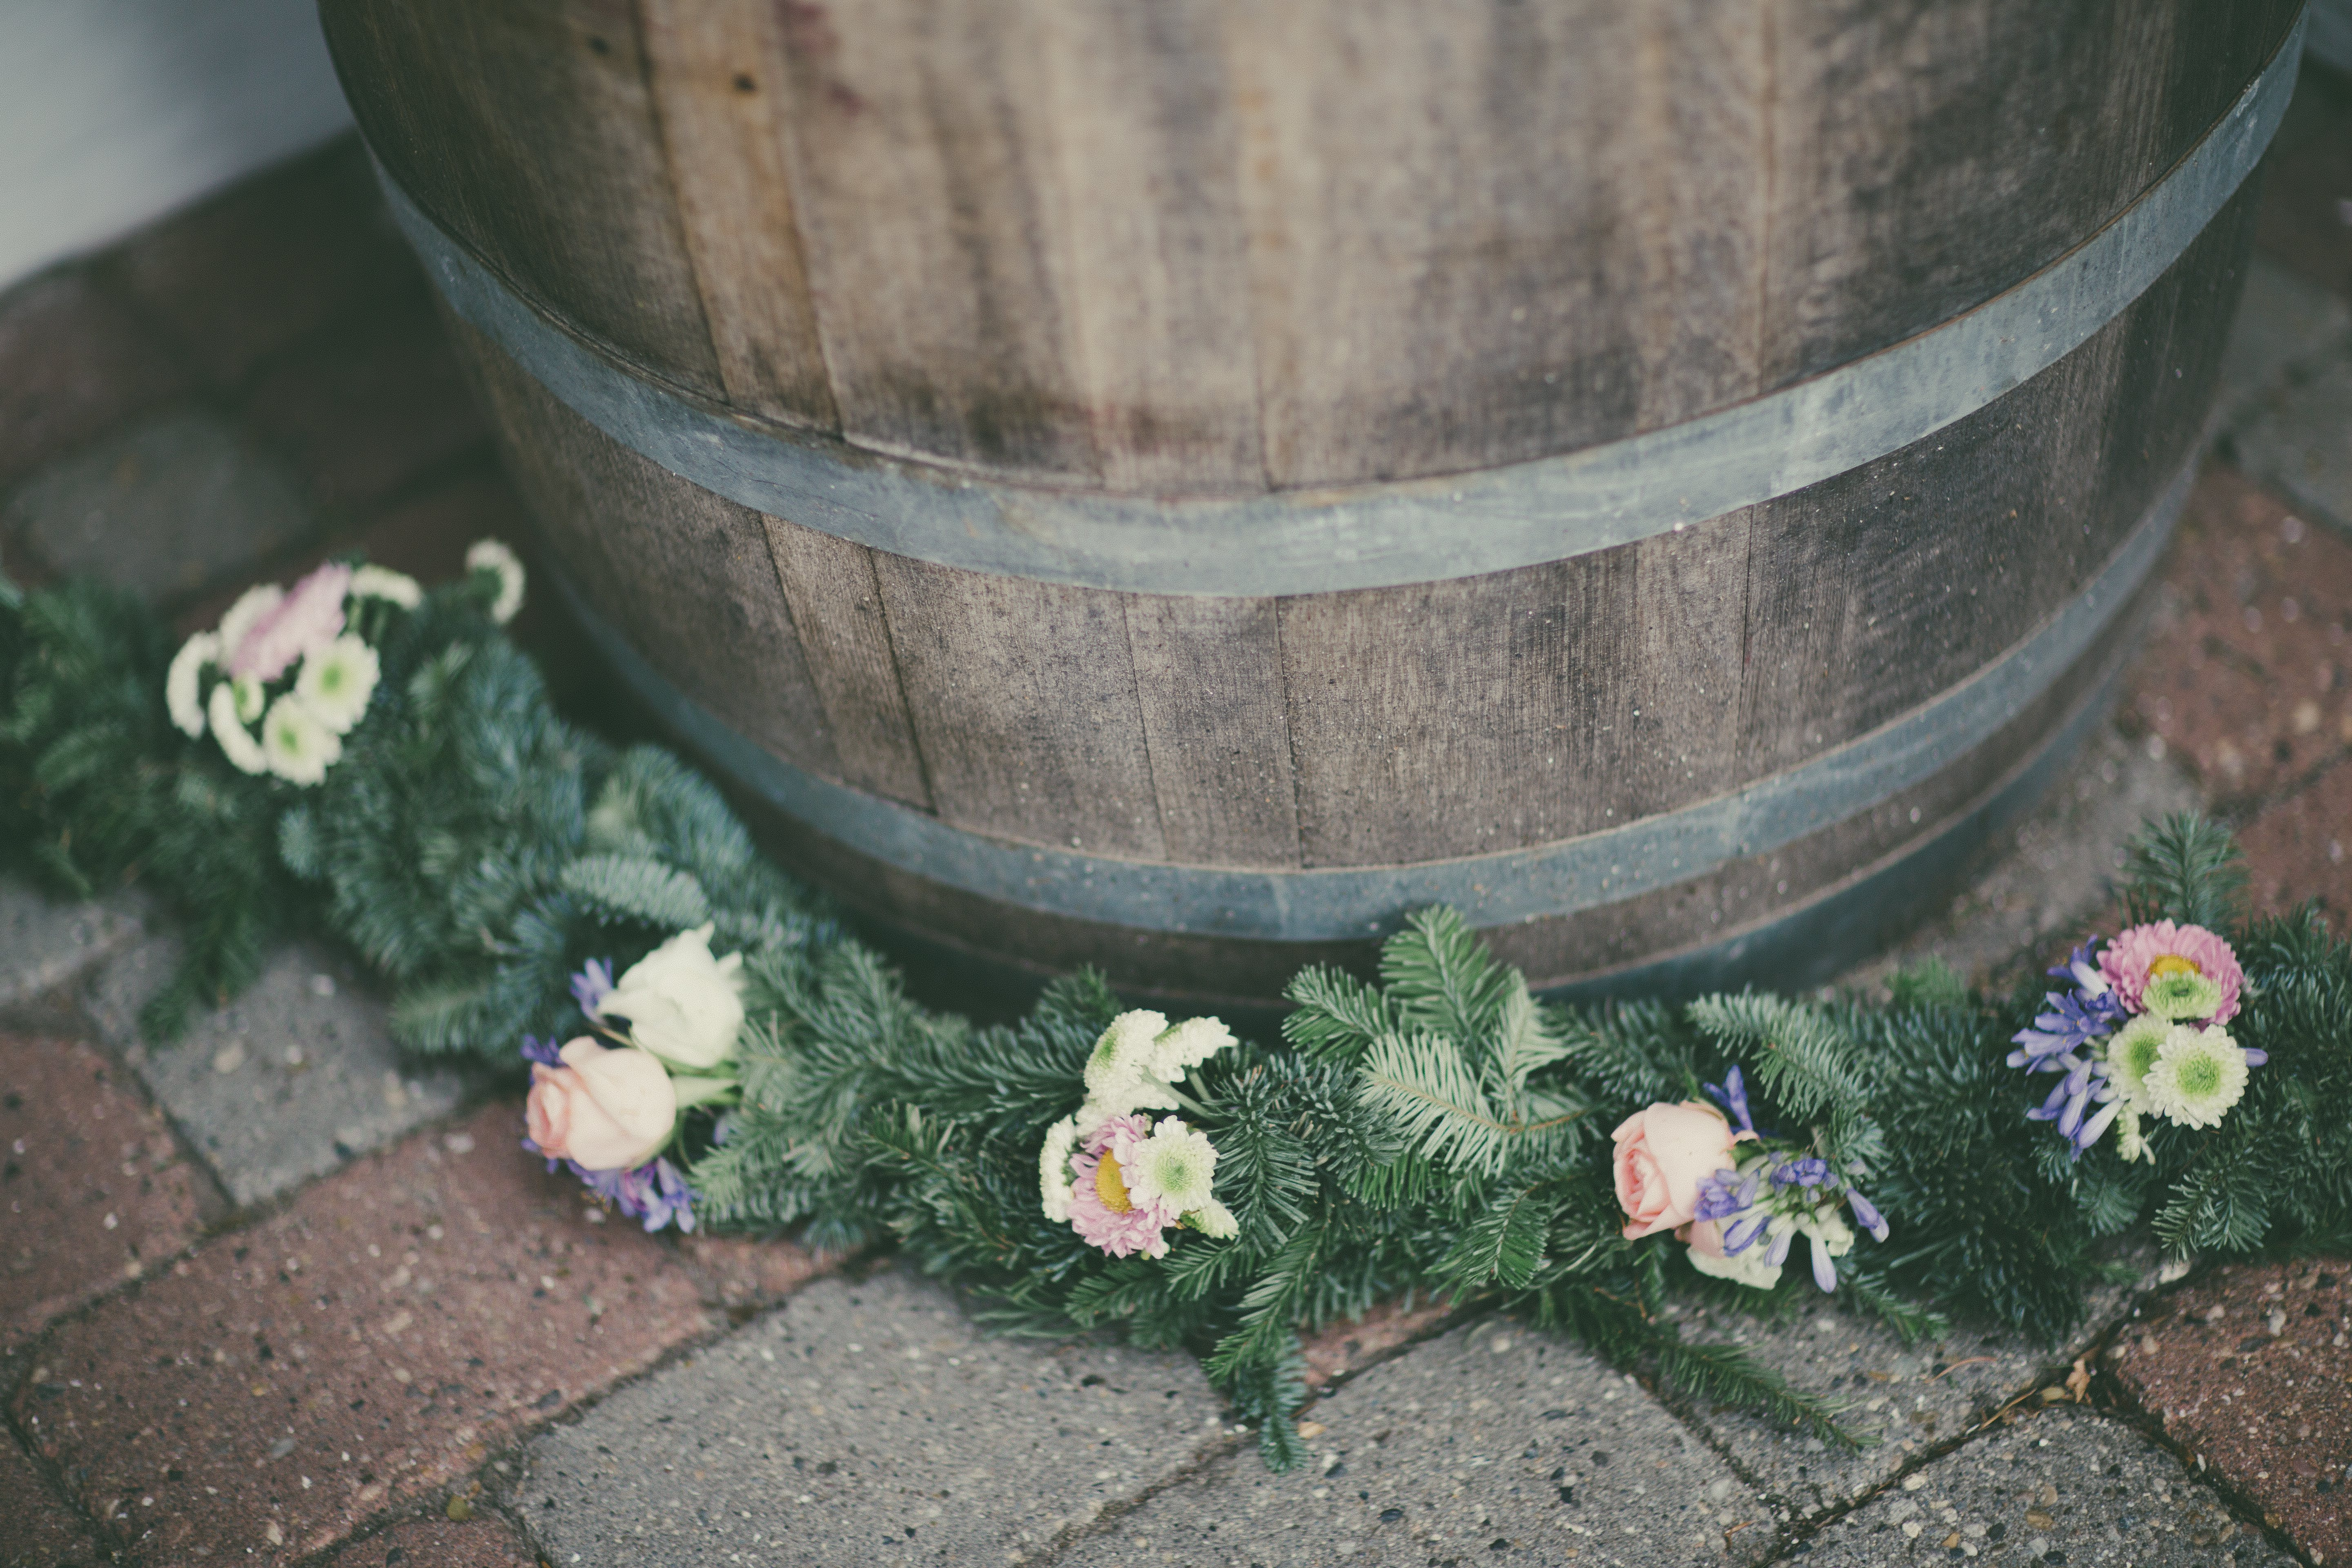 Pink and White Petaled Flowers Swag Beside Brown Wooden Barrel